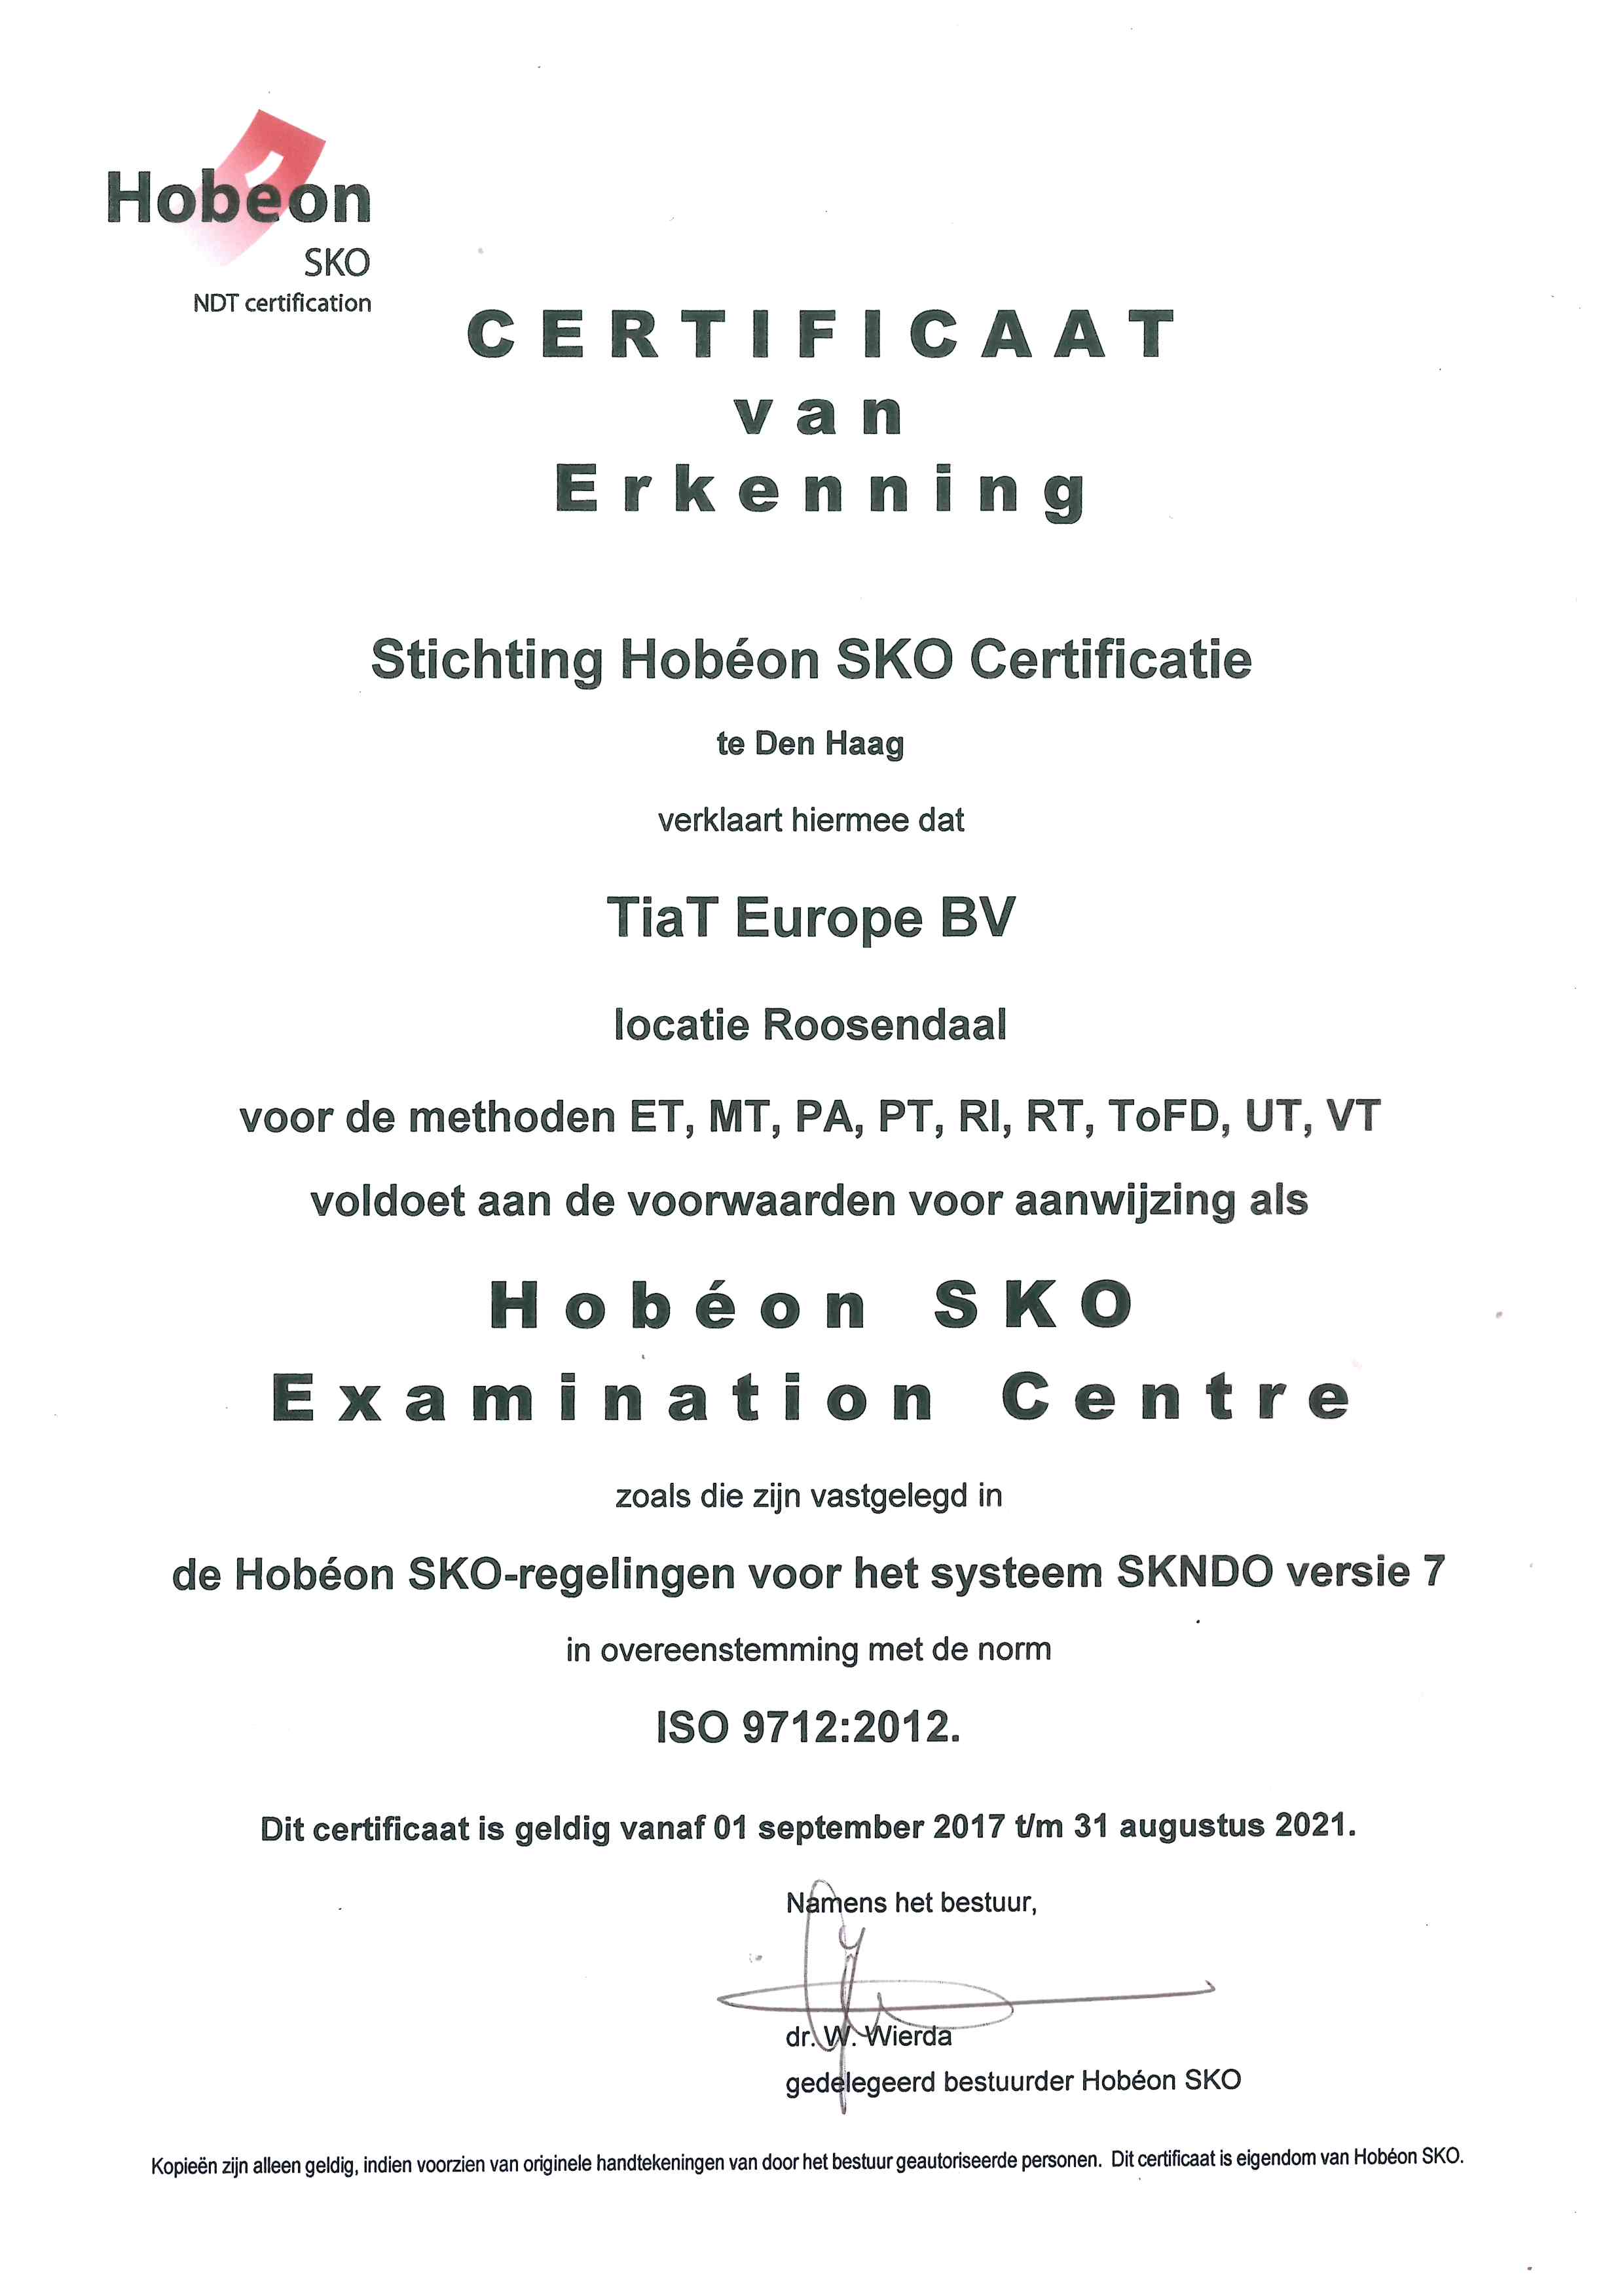 Examination Centre Type 4 - HSKO (ISO 9712)